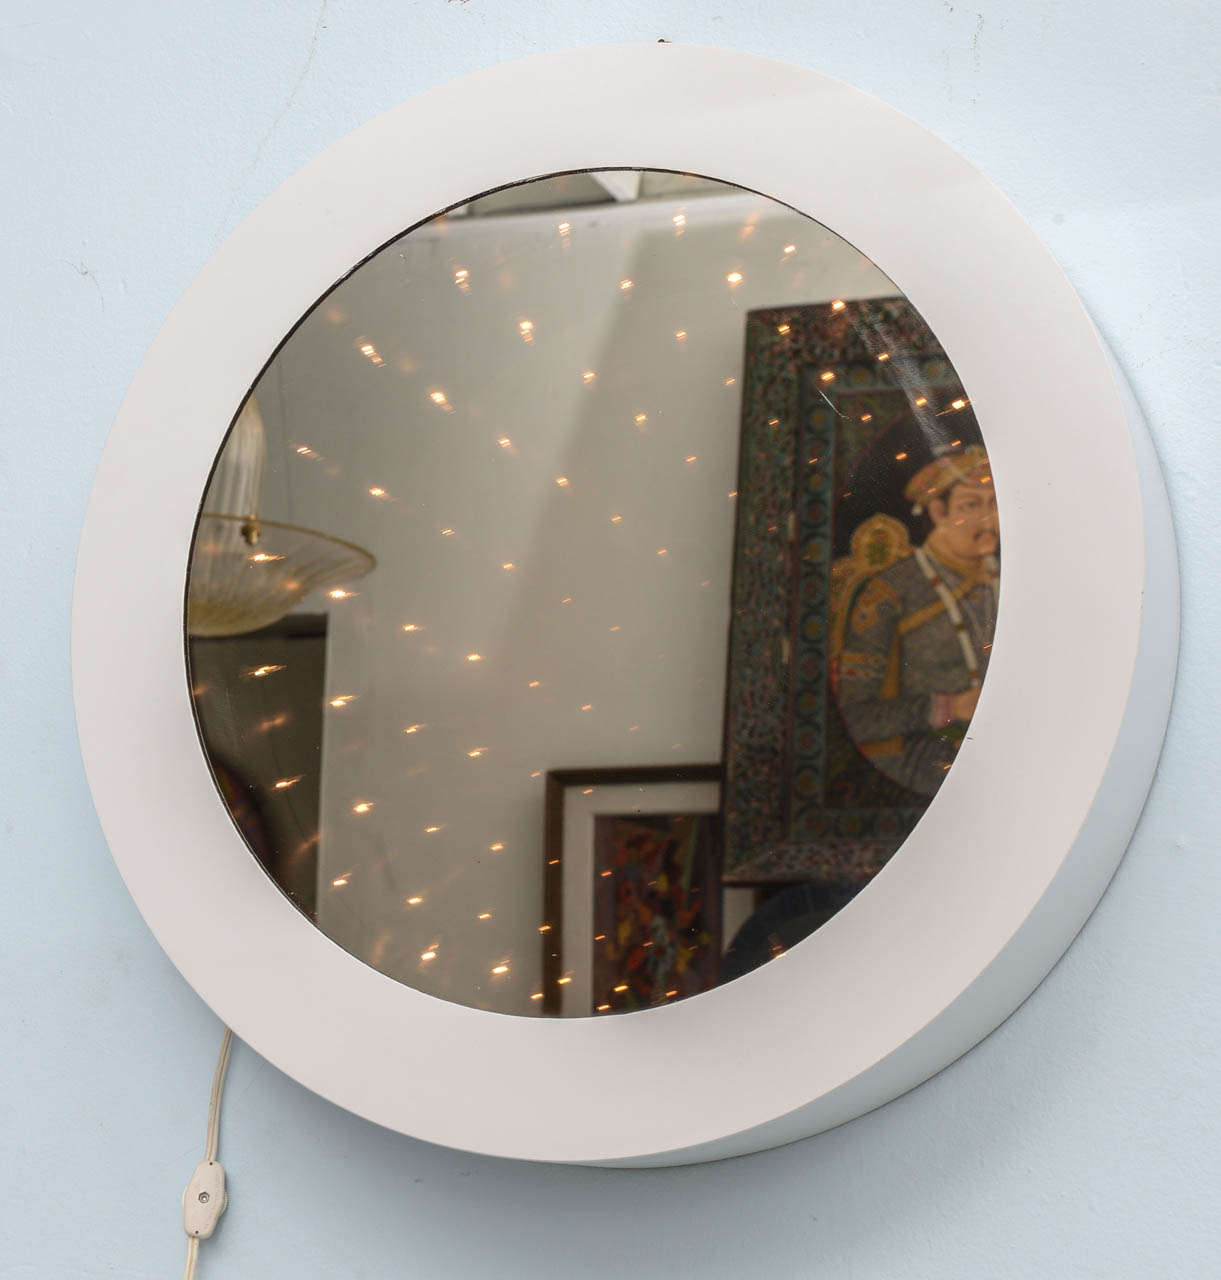 Cool Mod 1970s Vintage Infinity Tunnel Mirror Lamp At 1stdibs